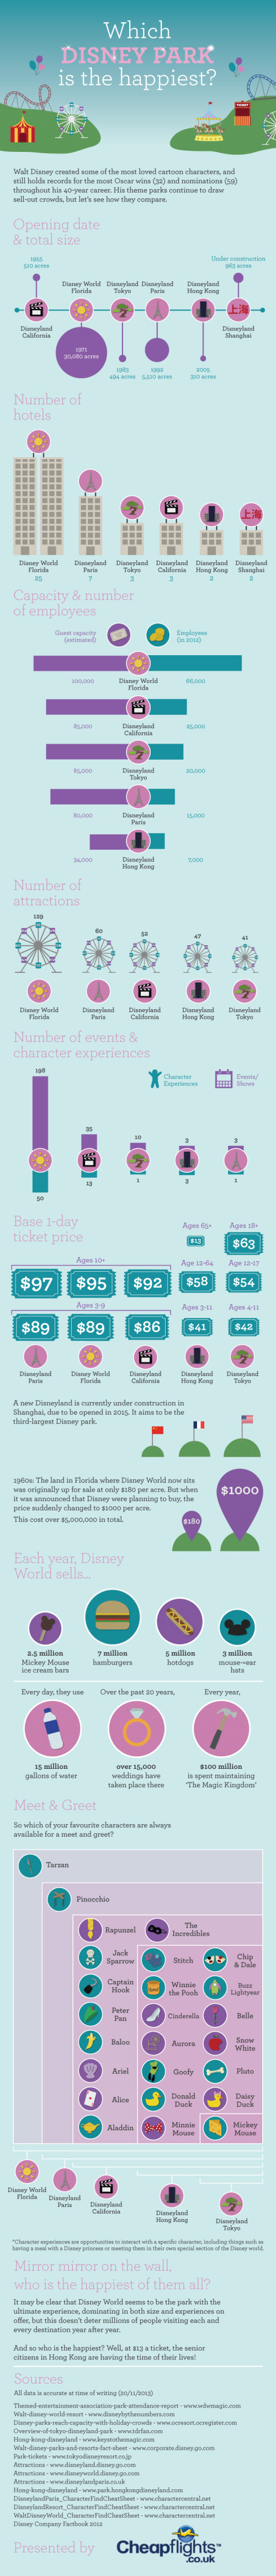 Which Disney Park is the Happiest? infographic